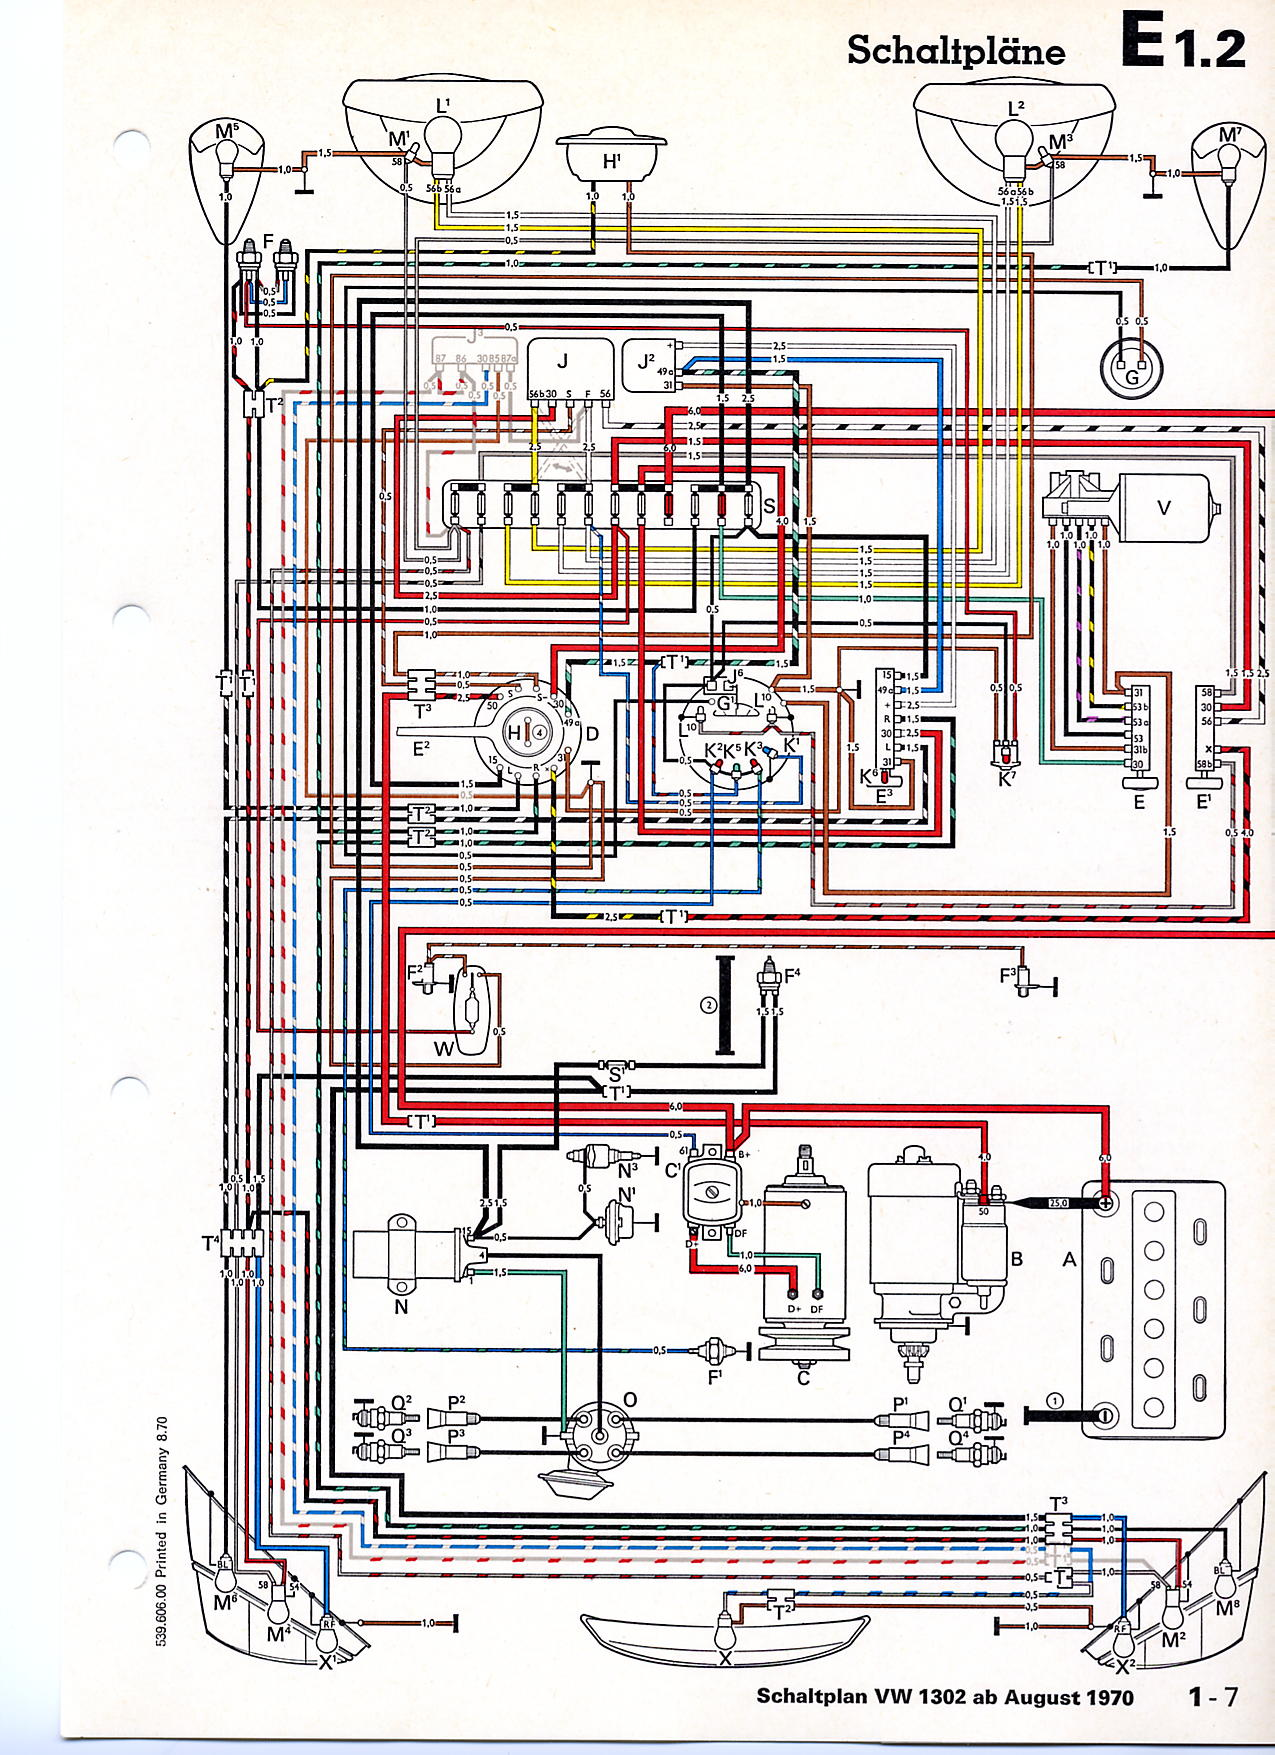 wiring diagram 1974 vw super beetle the wiring diagram thesamba beetle late model super 1968 up view topic · vw wiring diagram